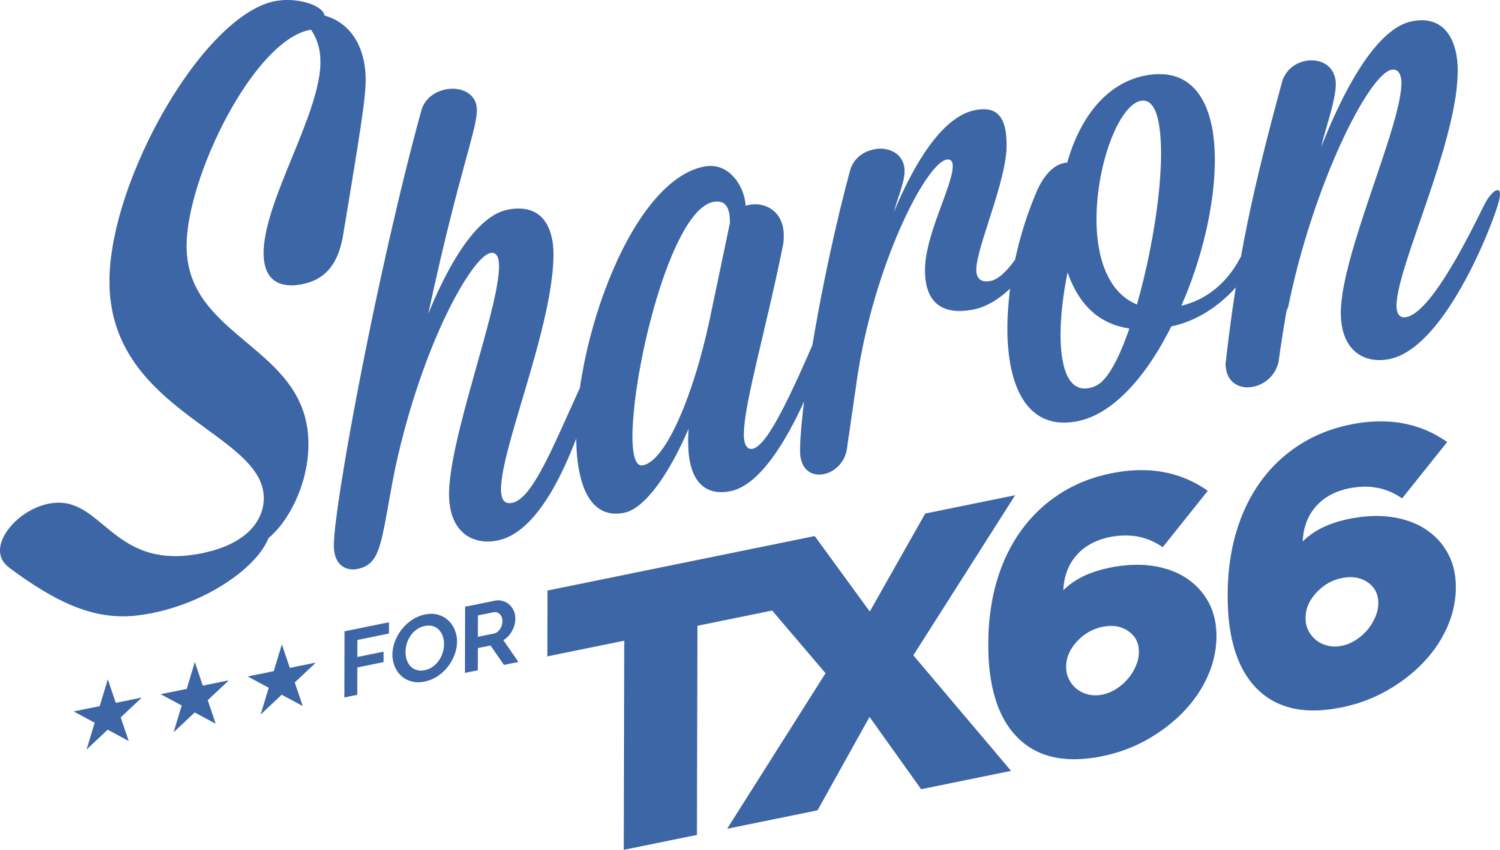 Sharon Hirsch for Texas House District 66